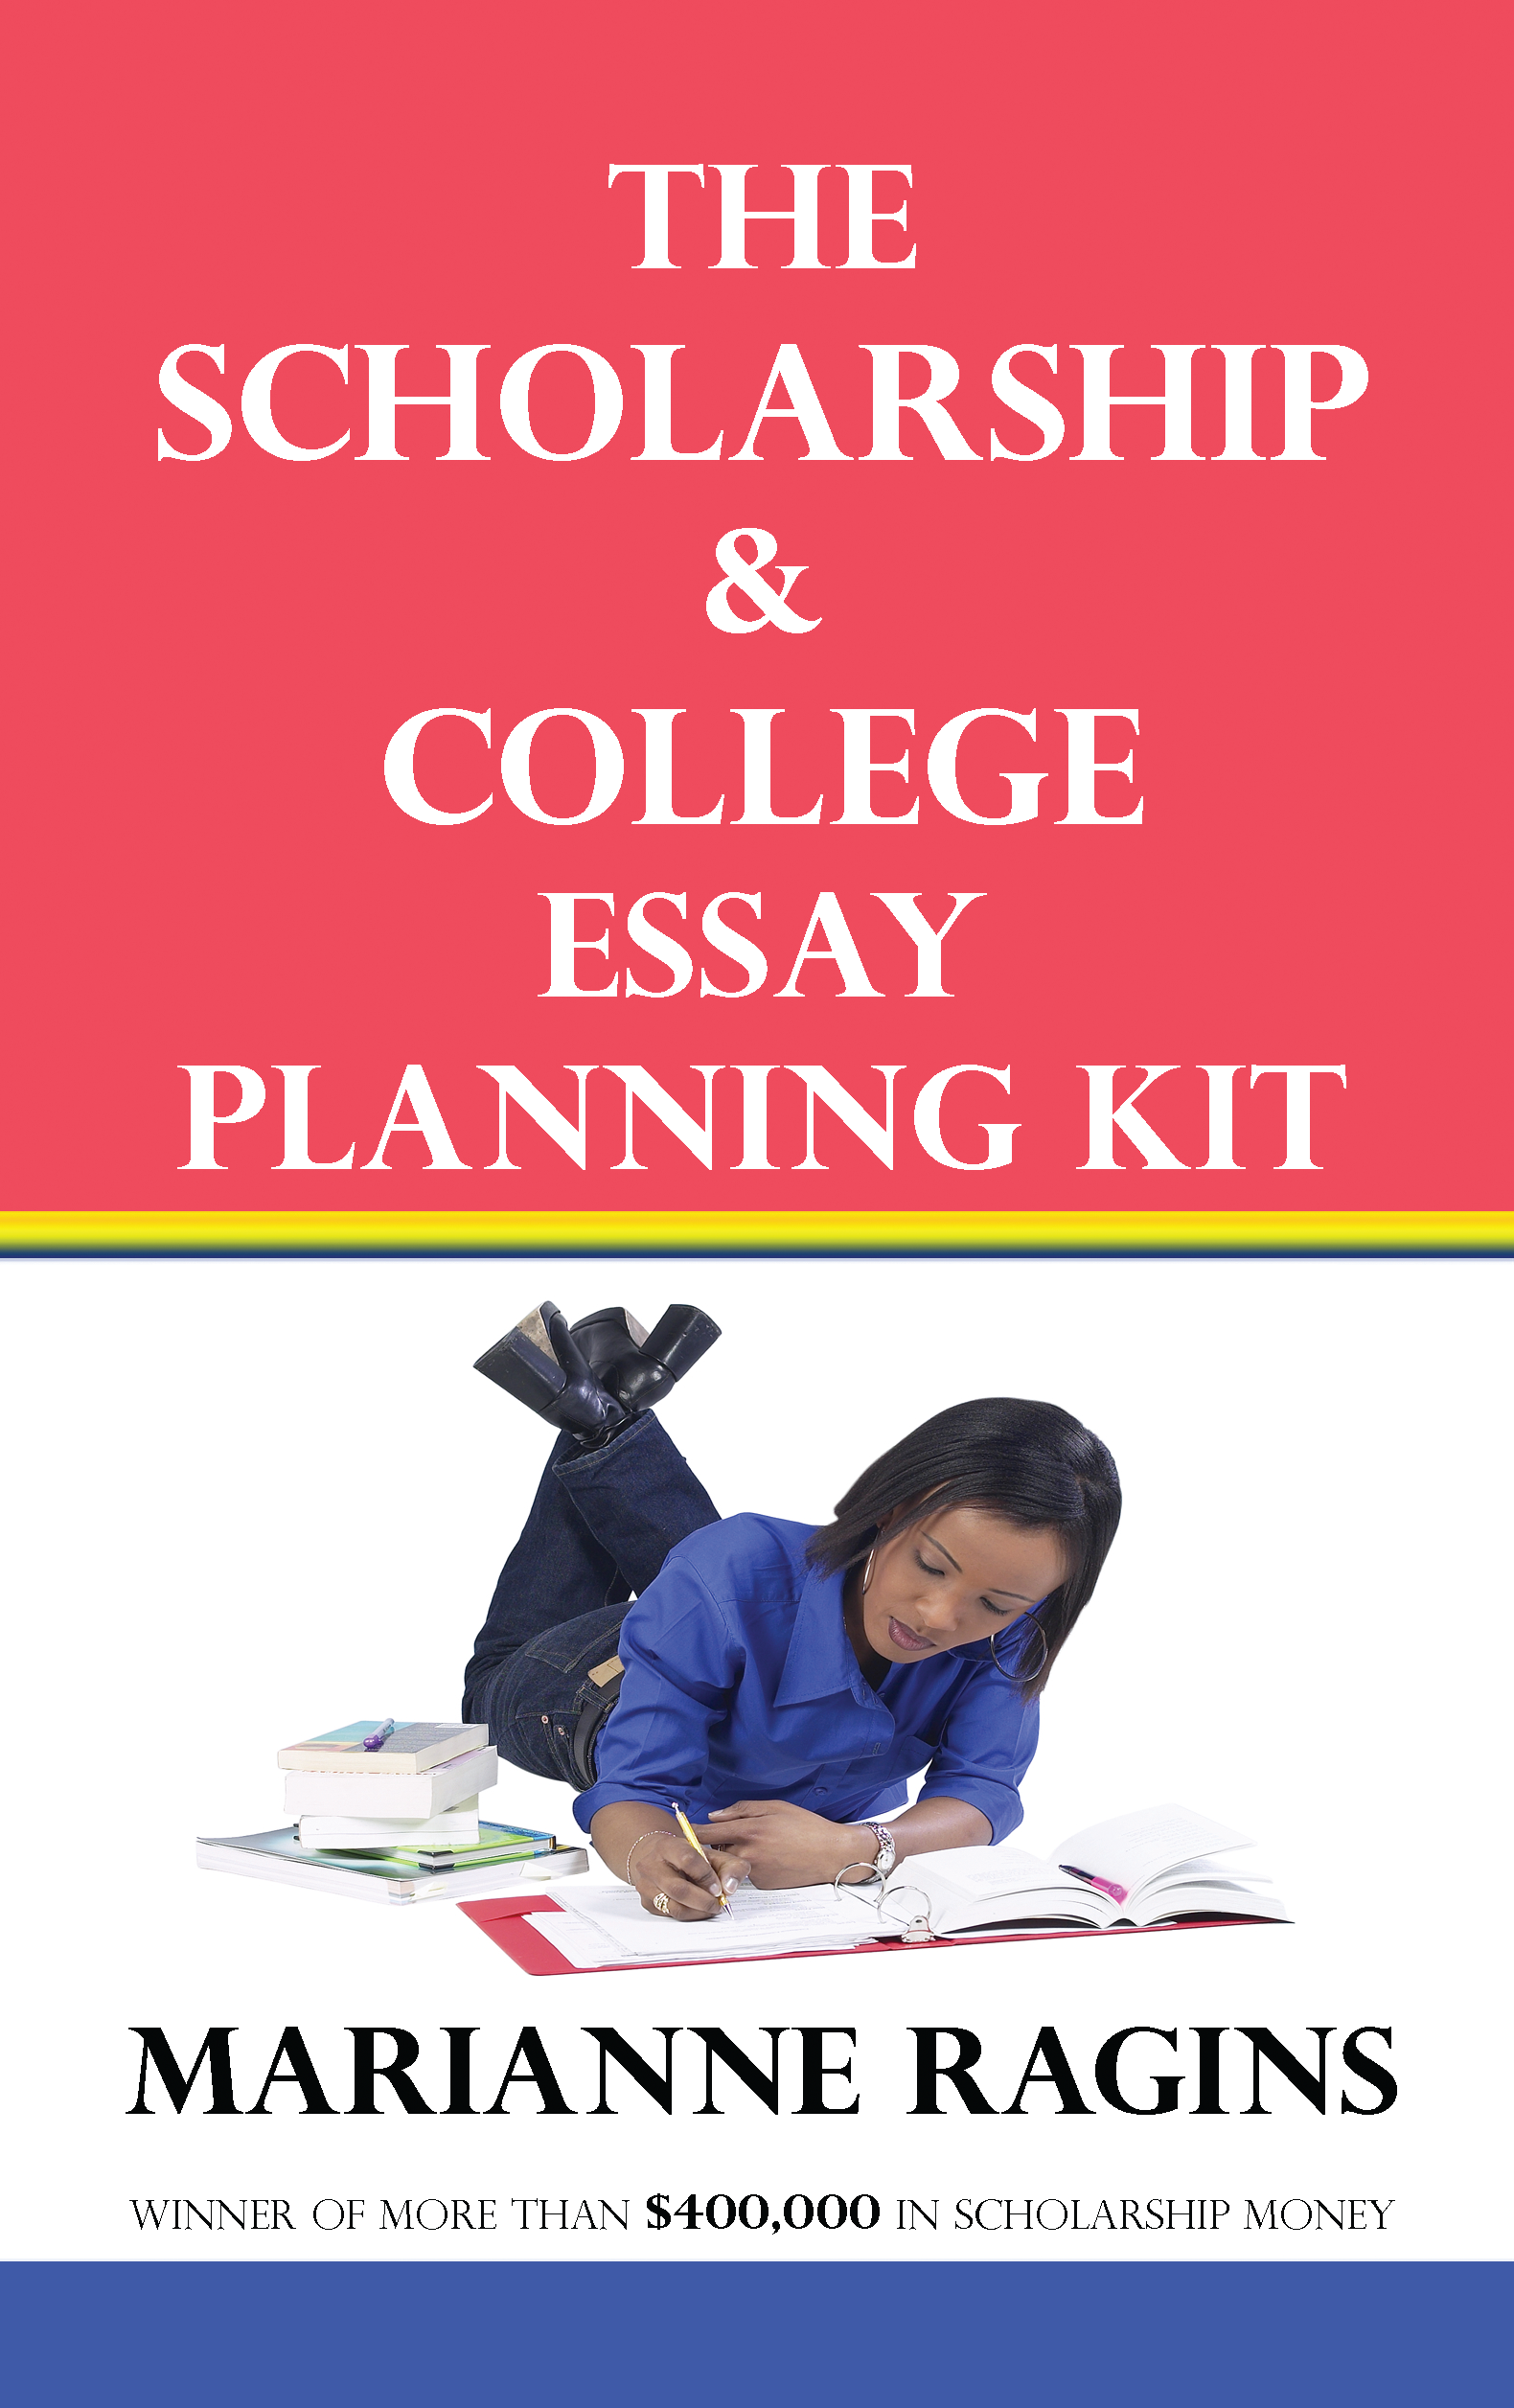 write scholarship essay college Tips for scholarship applications and personal about how to write a scholarship essay that will get city college scholarships office scholarship tips.